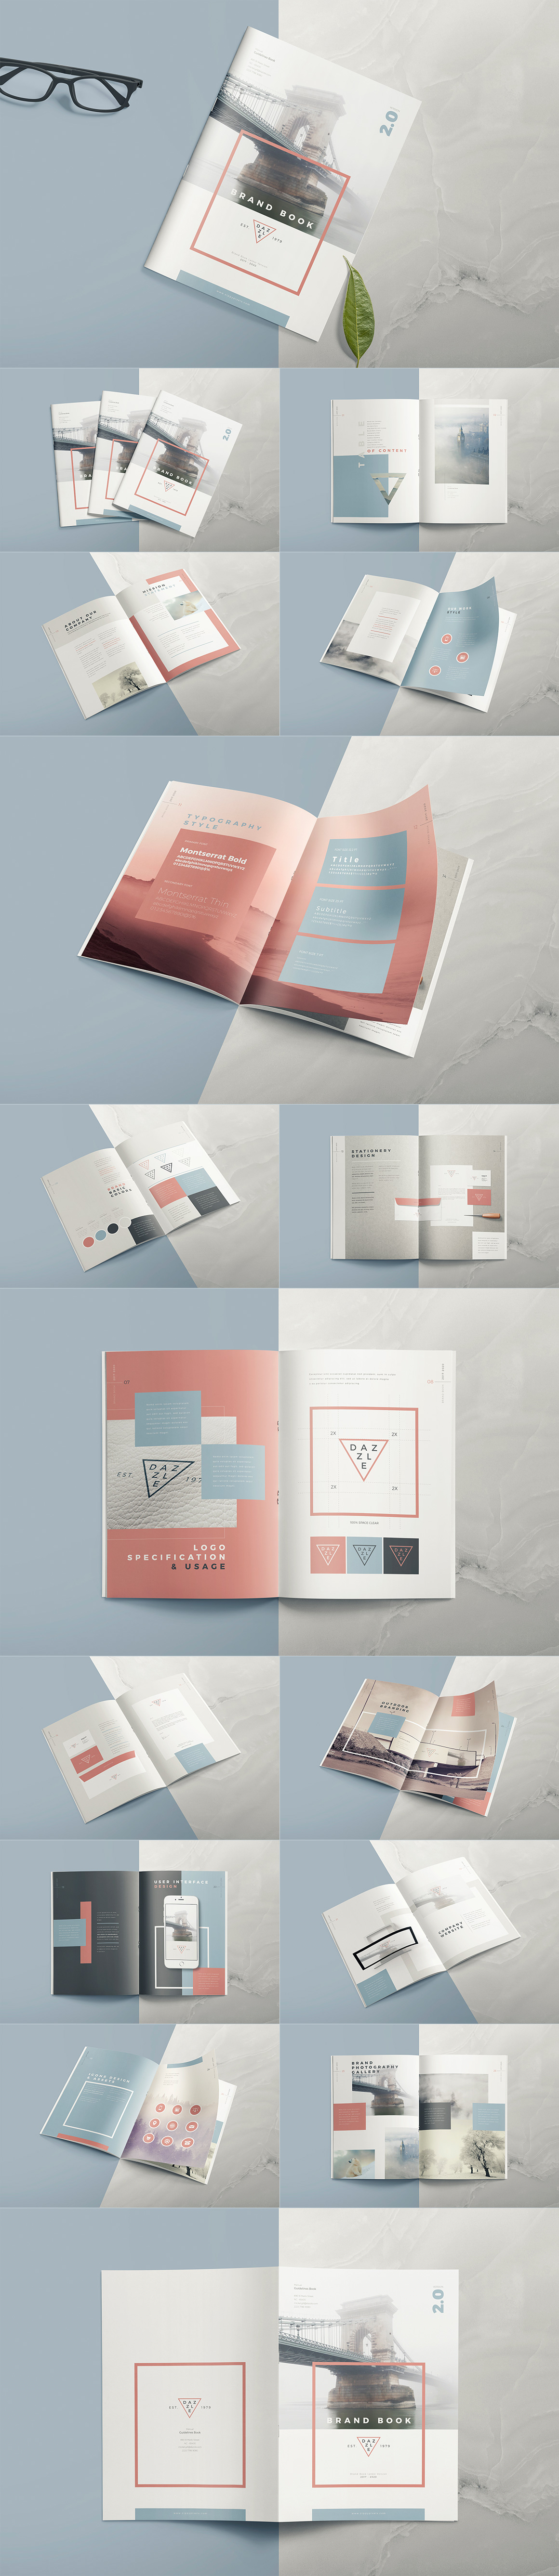 Style Guide & Brand Book Templates-strip16